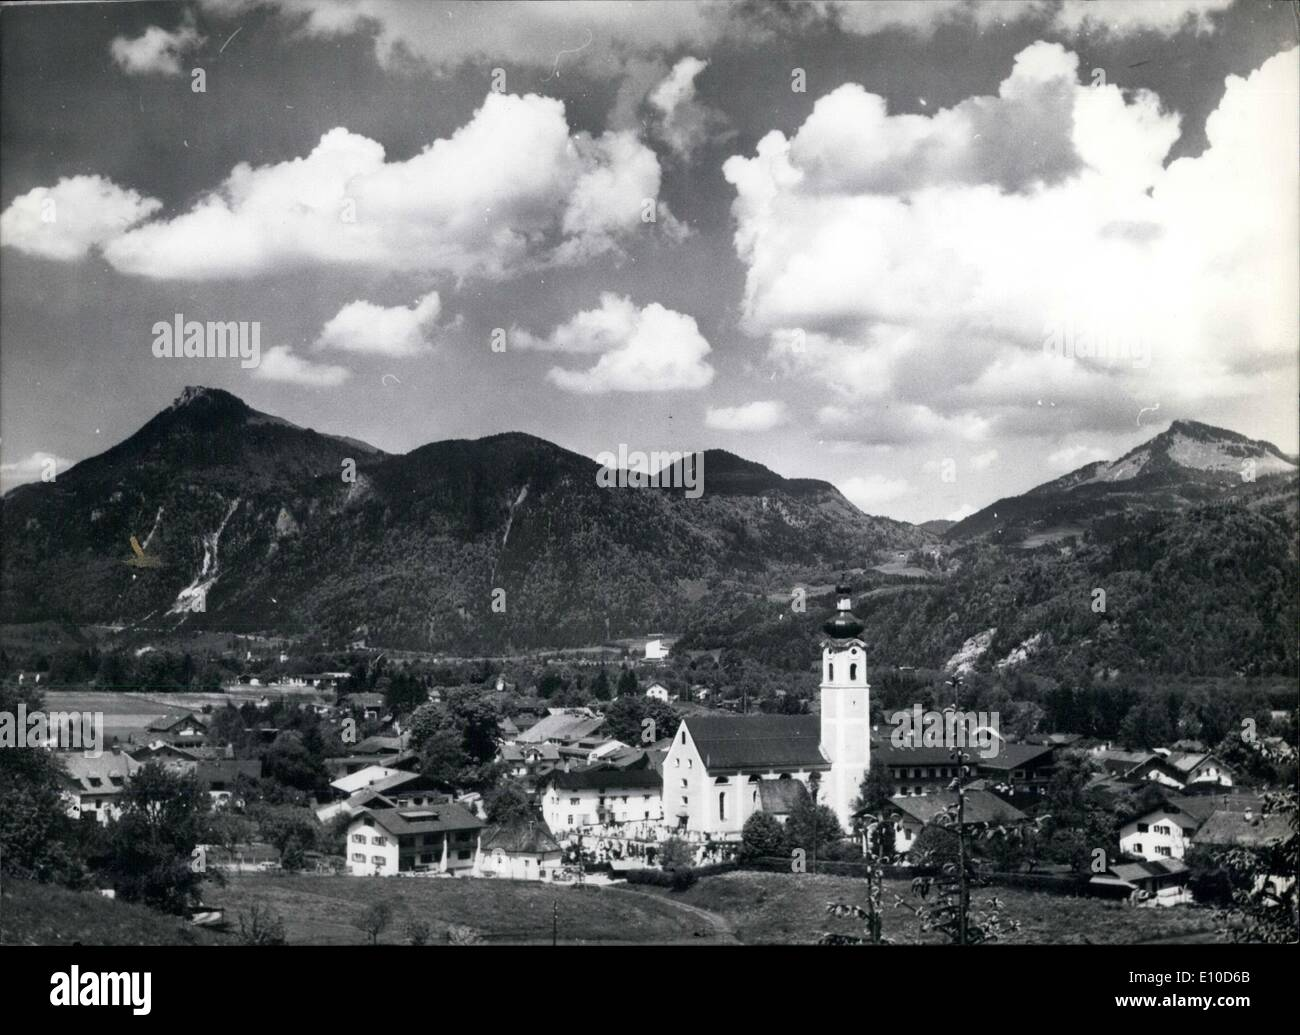 Jul. 07, 1972 - Visitors of East Germany will live in Oberaudorf During the Olympic Games.: Even in Oberaudorff/Bavaria( our picture) one has to be prepared for the Olympic Games; but in contrast to Munich this small community with 1.800 beds for tourists has only got gastronomical problems to solve. For the first time the authorities of East Germany gave their permission that 2000 people may visit West Germany on Occasion of the Olympic Games in Munich. About half of them will live in Oberaudorf during this time - Stock Image